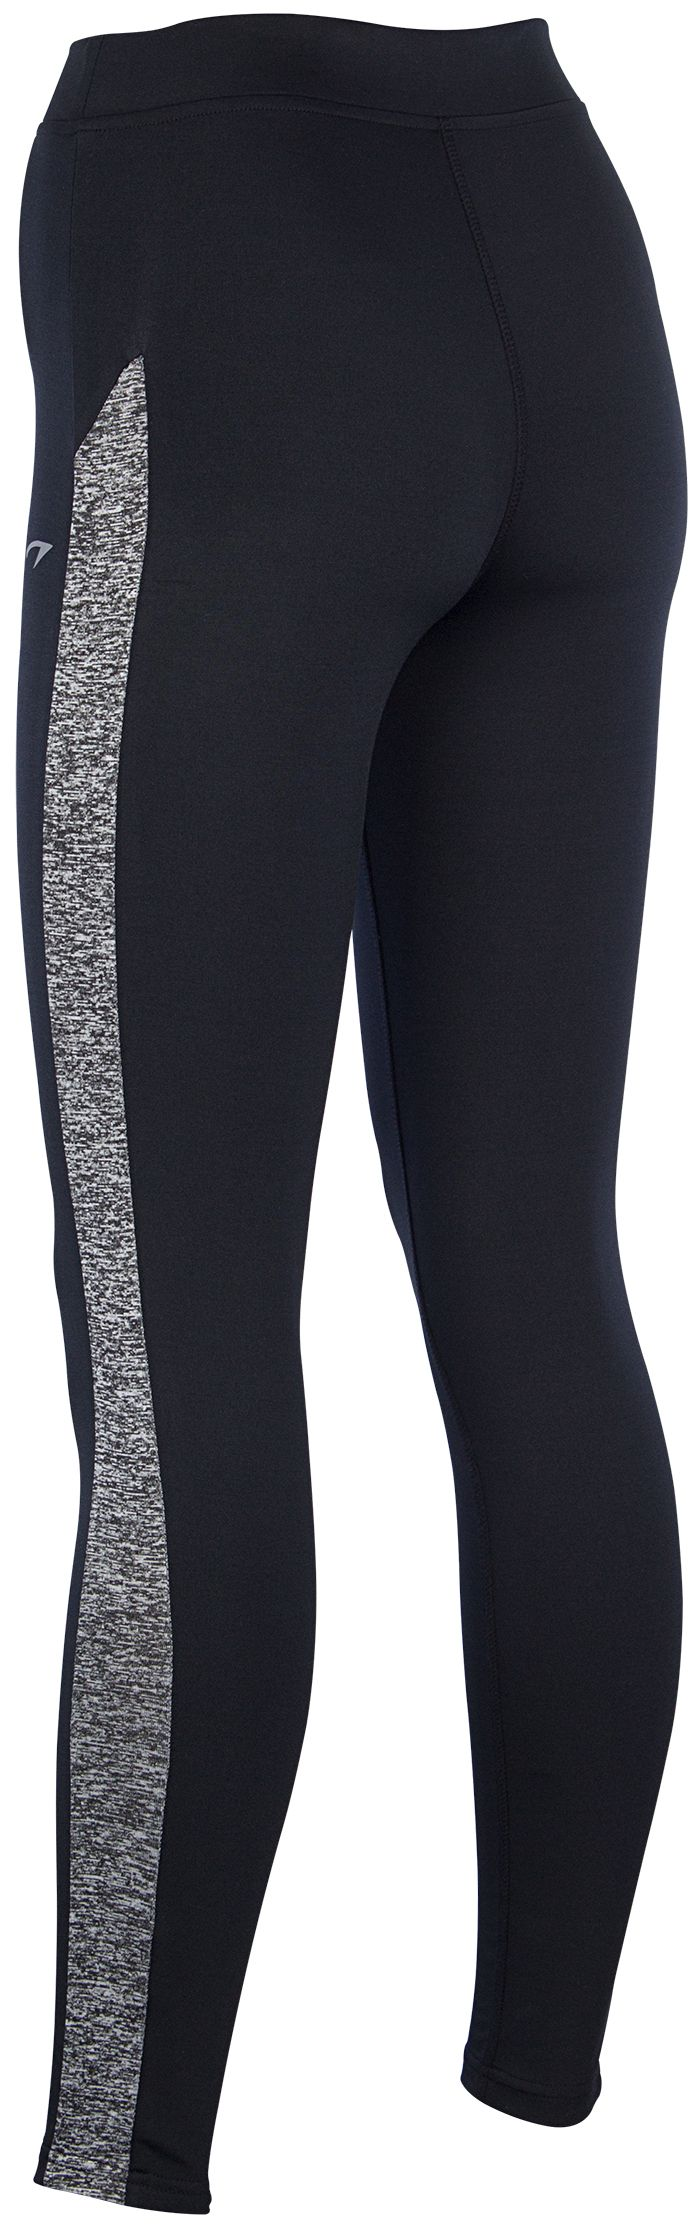 Sportlegging • Dames •